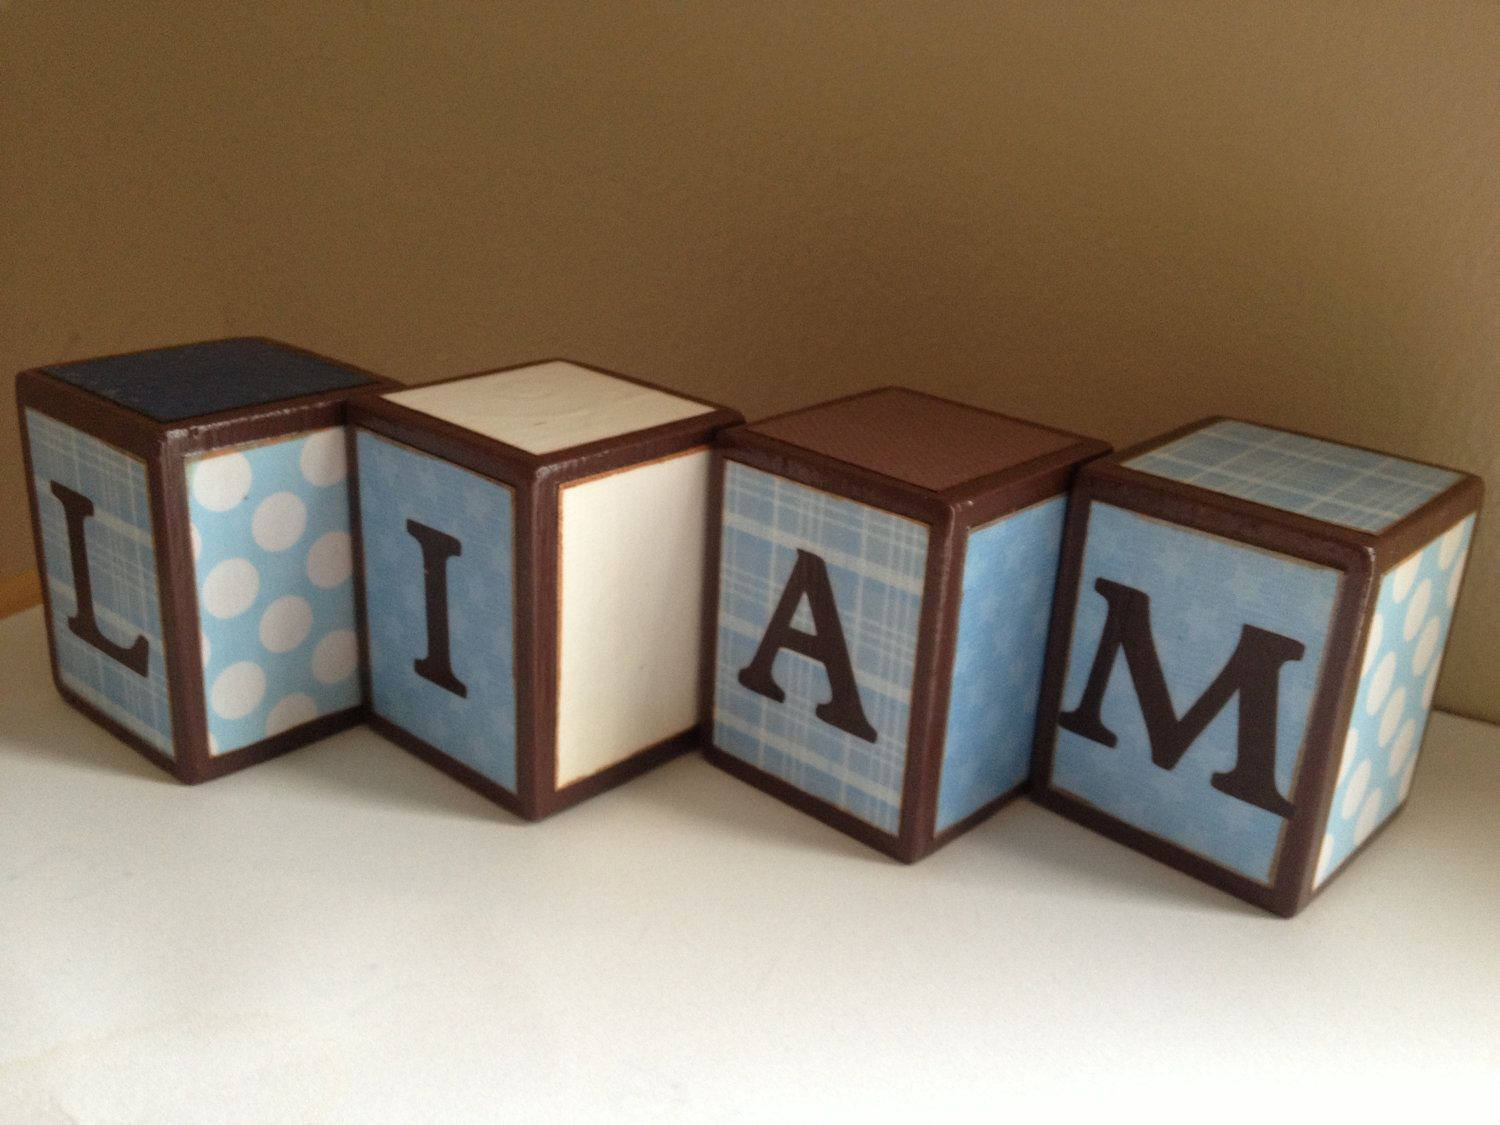 Baby name blocks custom wood letter blocks blocks personalized baby name blocks custom wood letter blocks blocks personalized baby gift baby negle